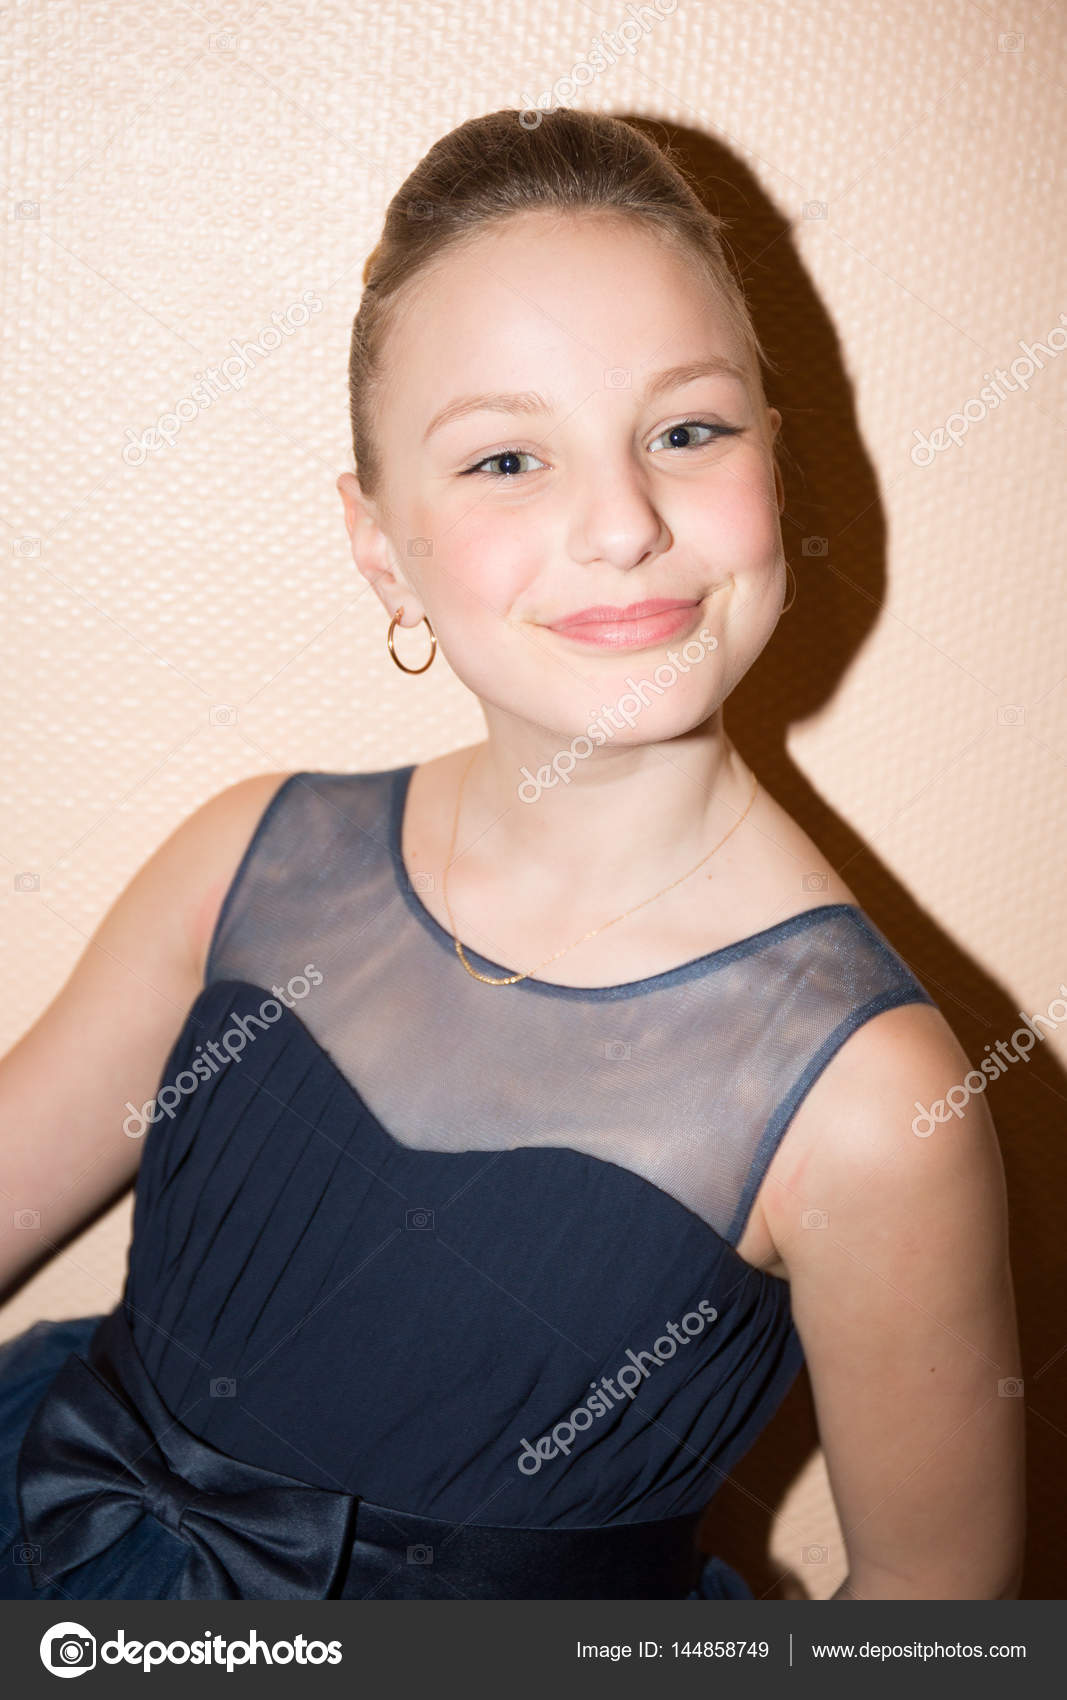 Teenage Girl With Hair Pulled Back And Blonde Stock Photo Image By C Oceanprod 144858749